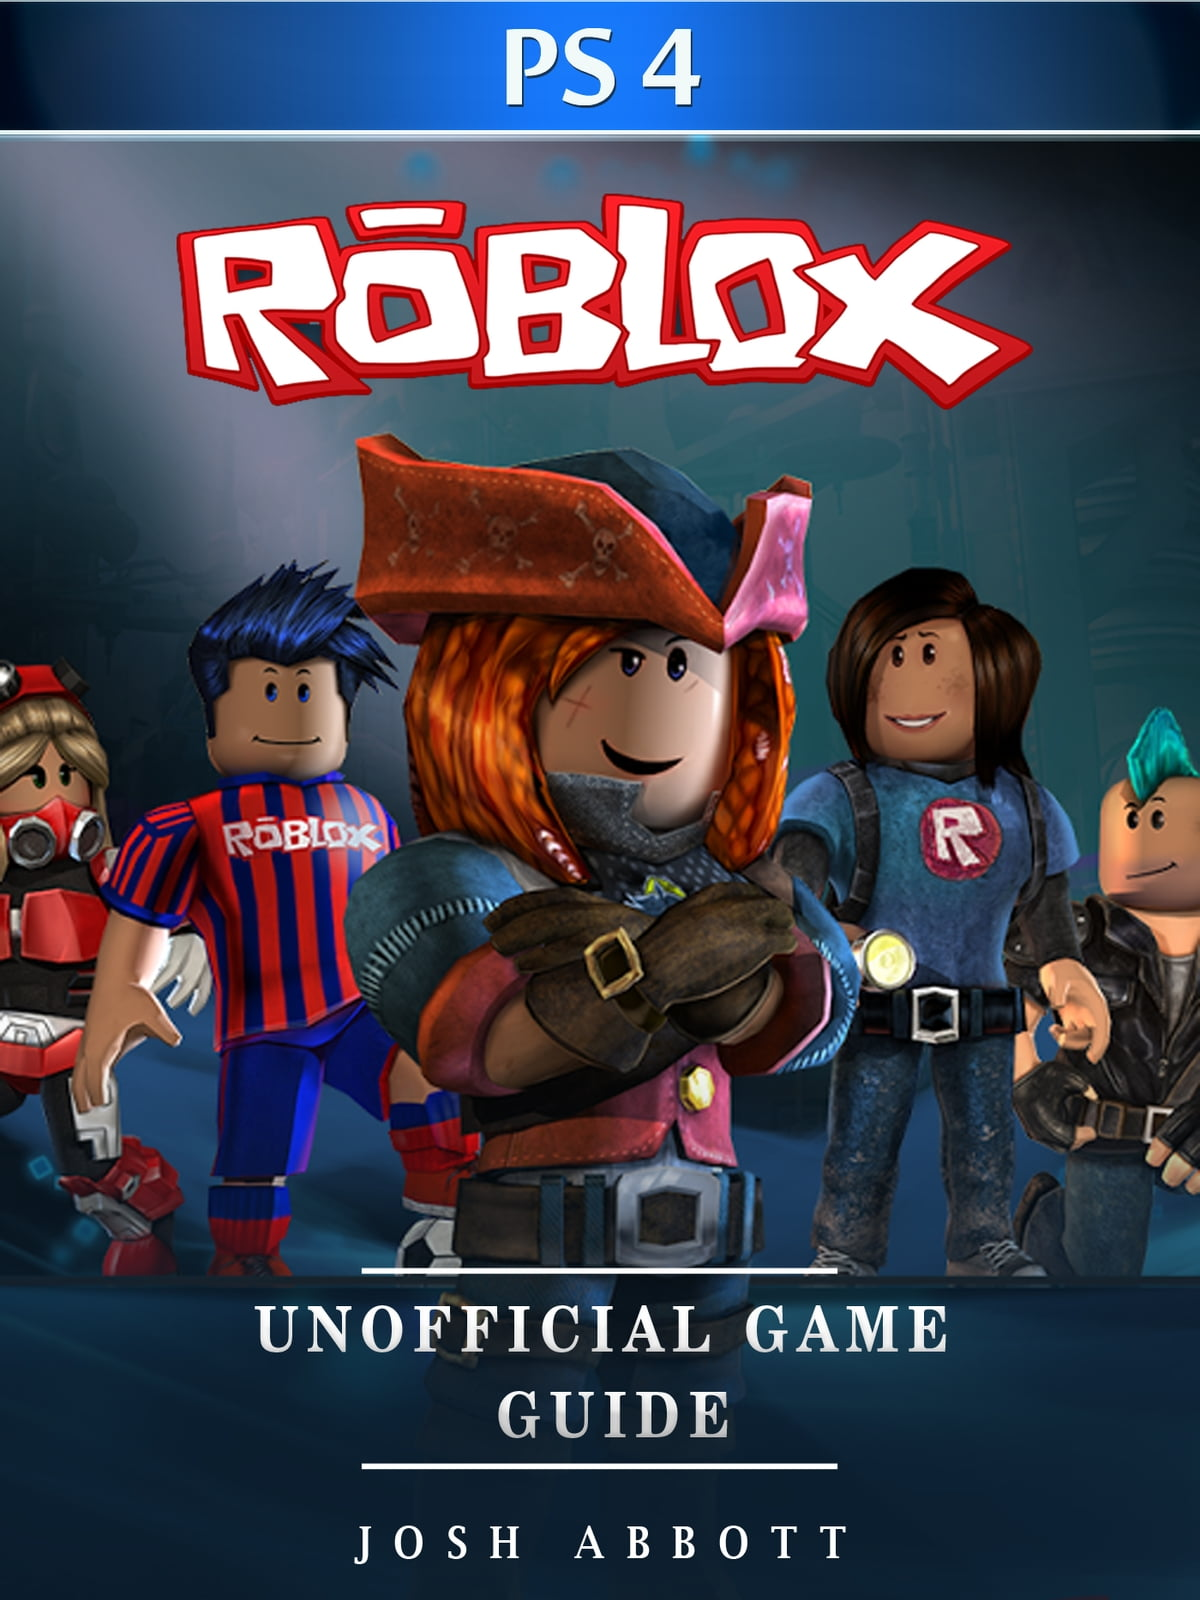 Play Roblox On Ps3 Roblox Ps4 Unofficial Game Guide Ebook By Josh Abbott 9781365895289 Rakuten Kobo United States